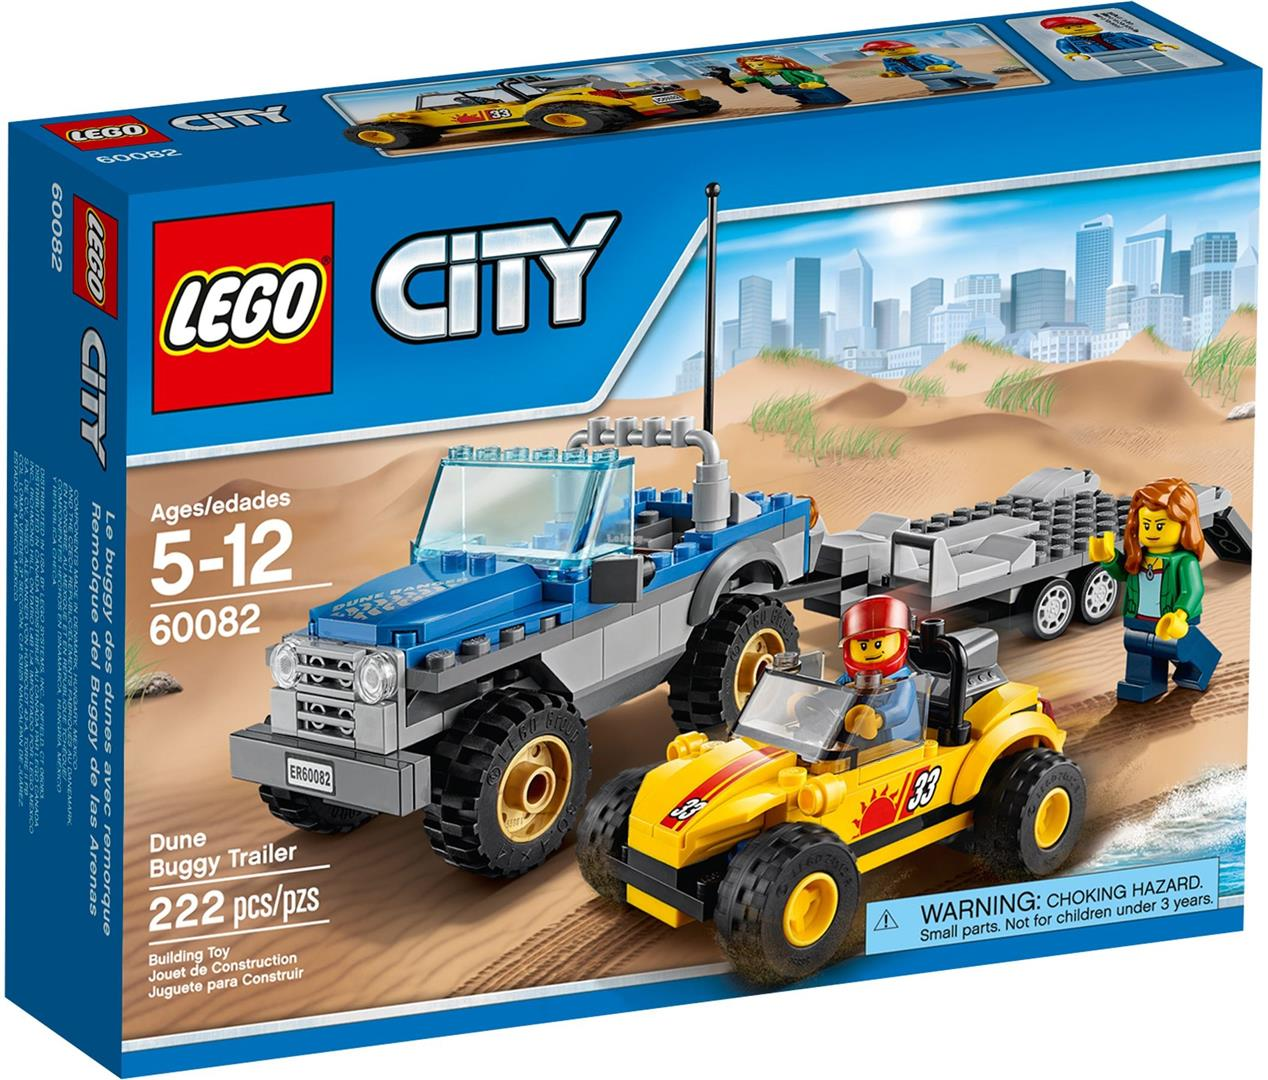 Lego City Dune Buggy Trailer 60082 New MISB